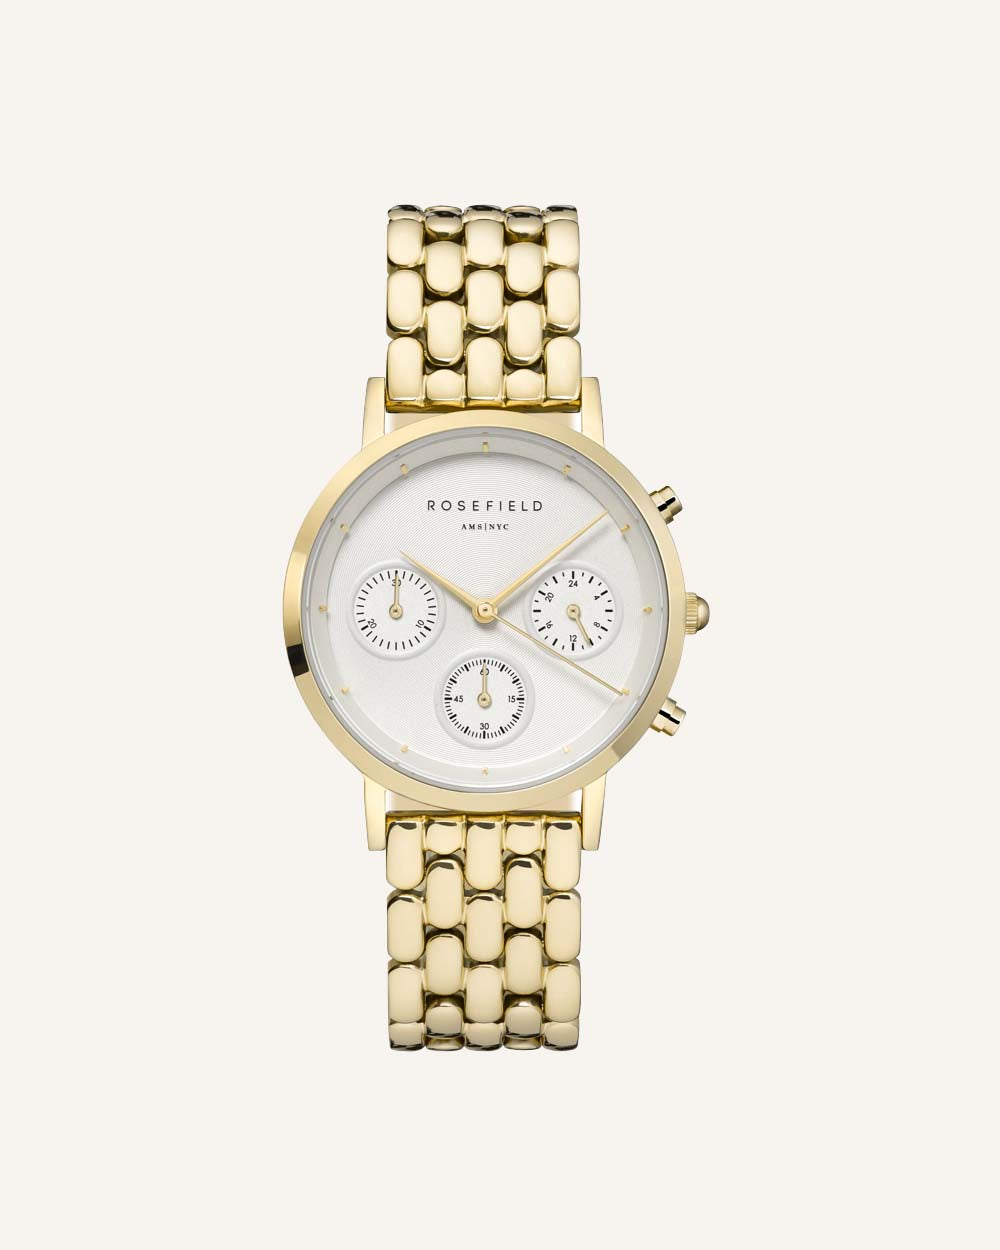 Rosefield Women's Watches & Jewelry   Official Website